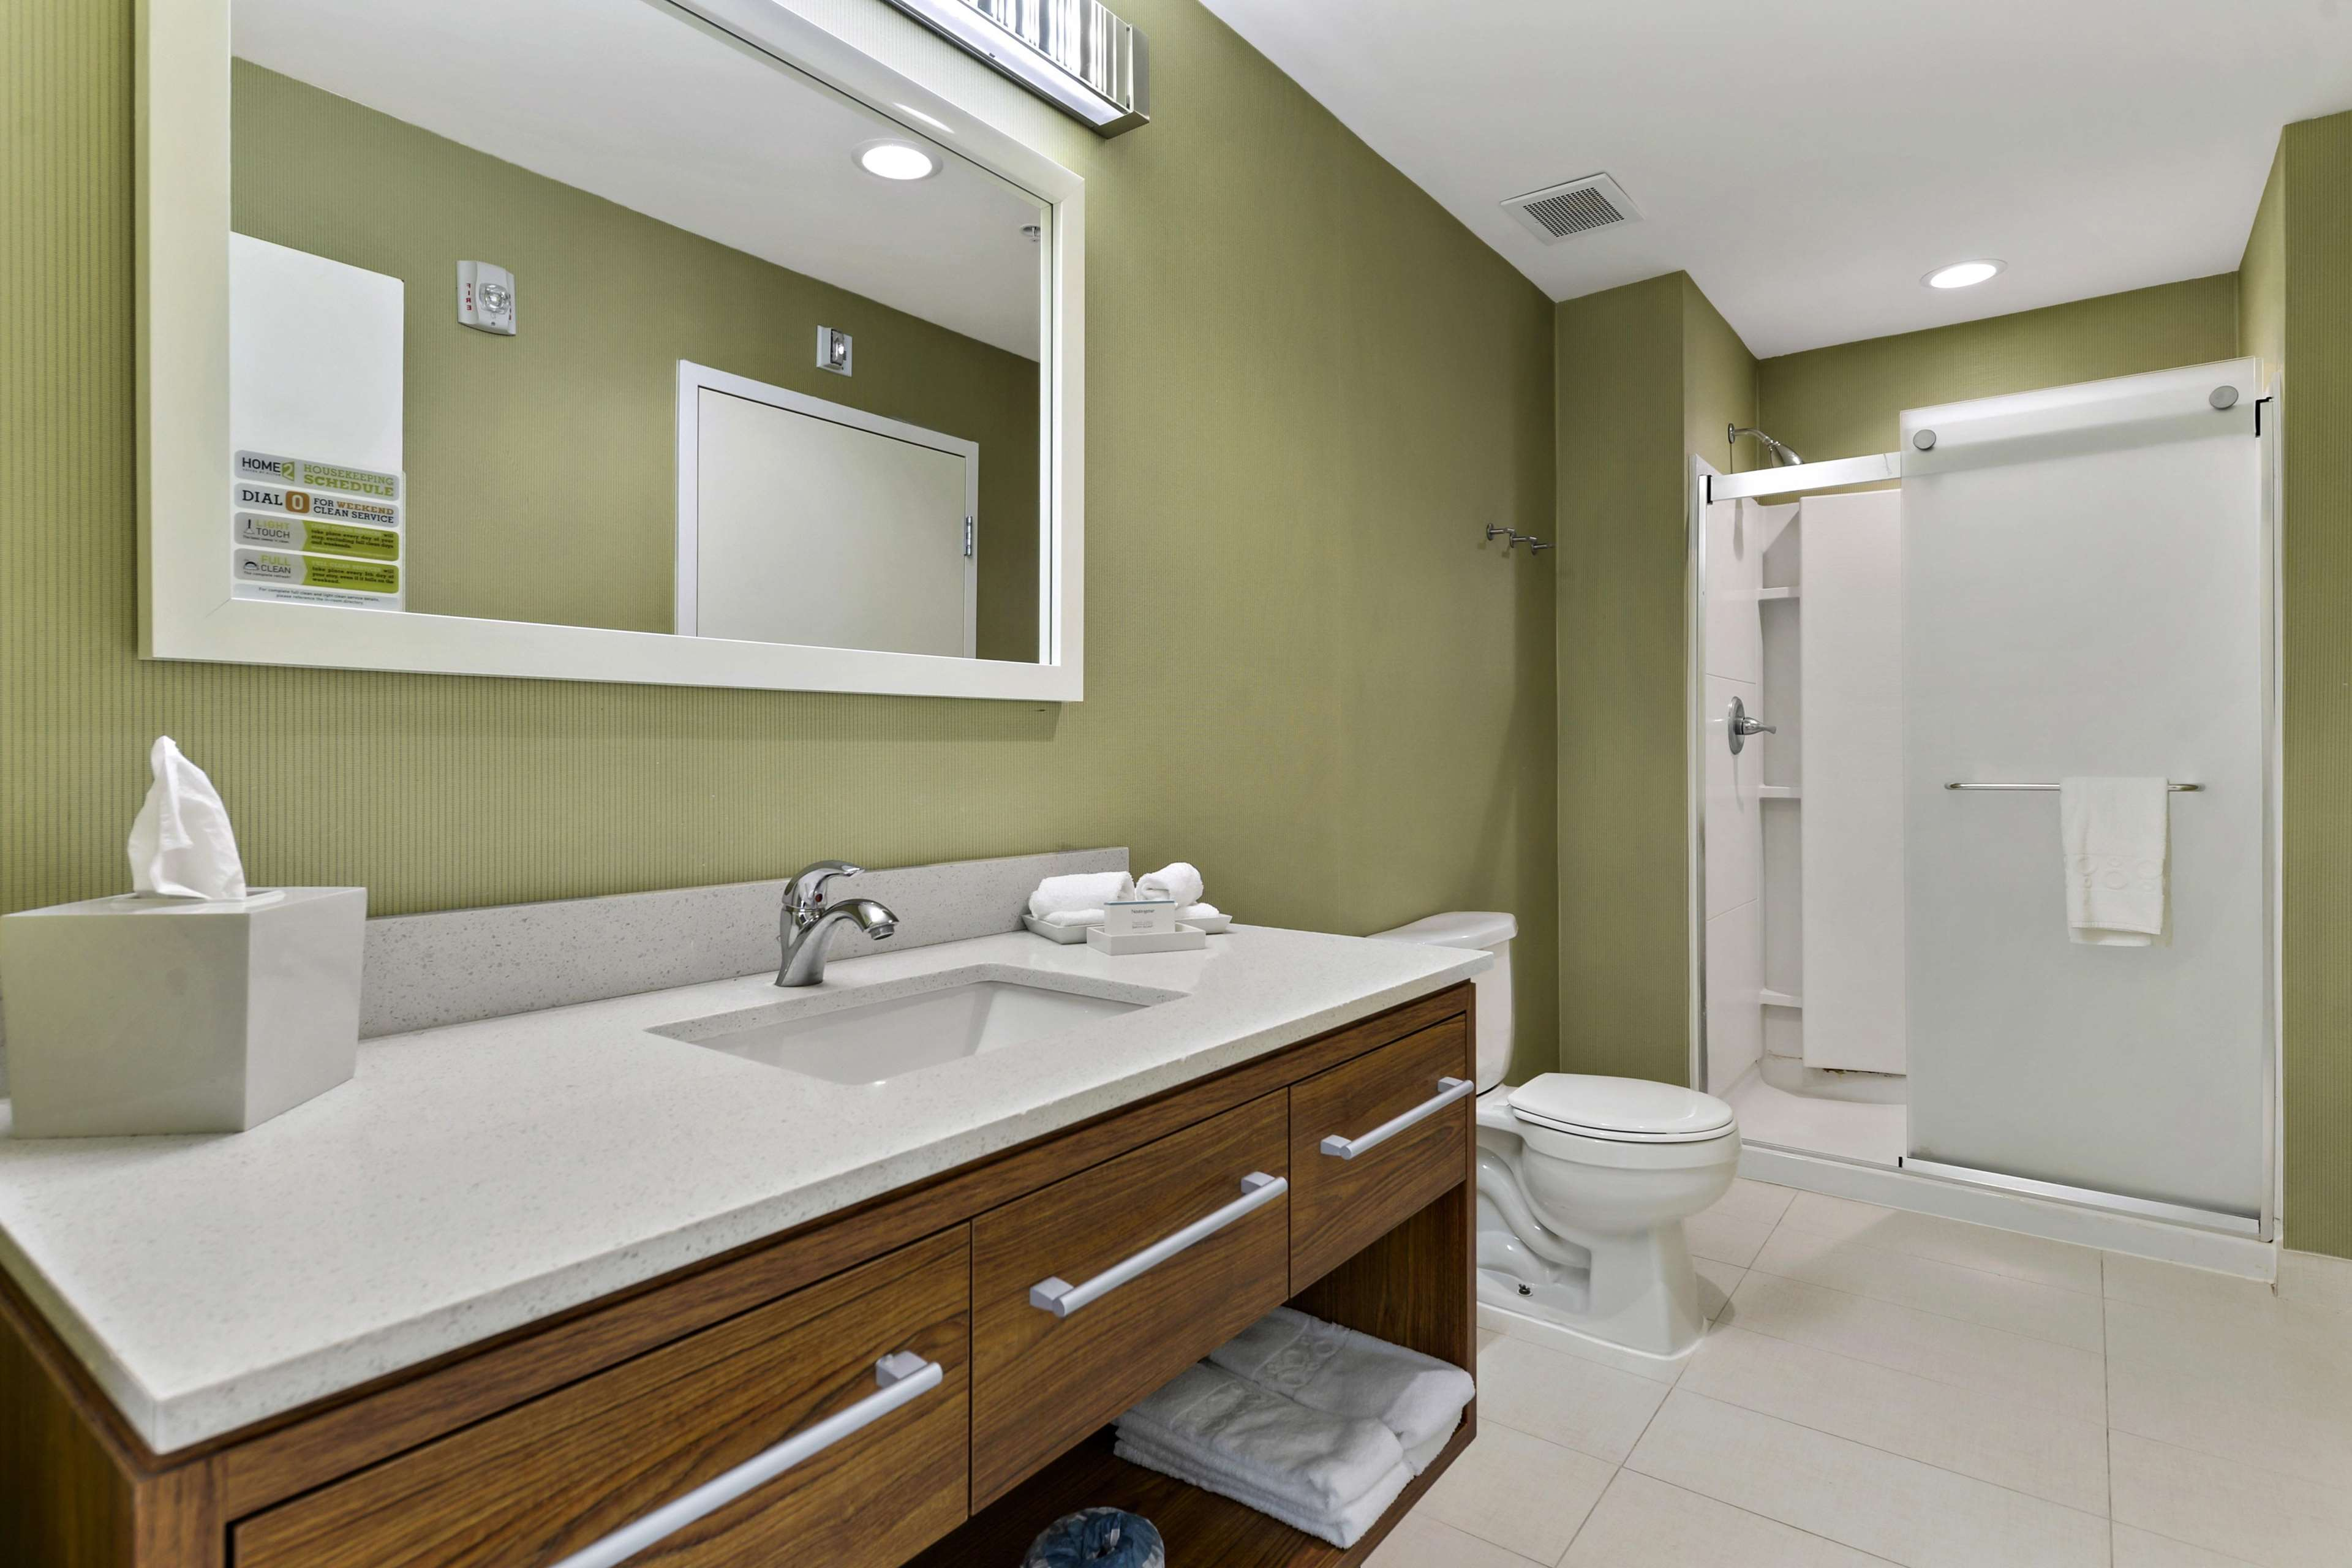 Home2 Suites by Hilton Gulfport I-10 image 19